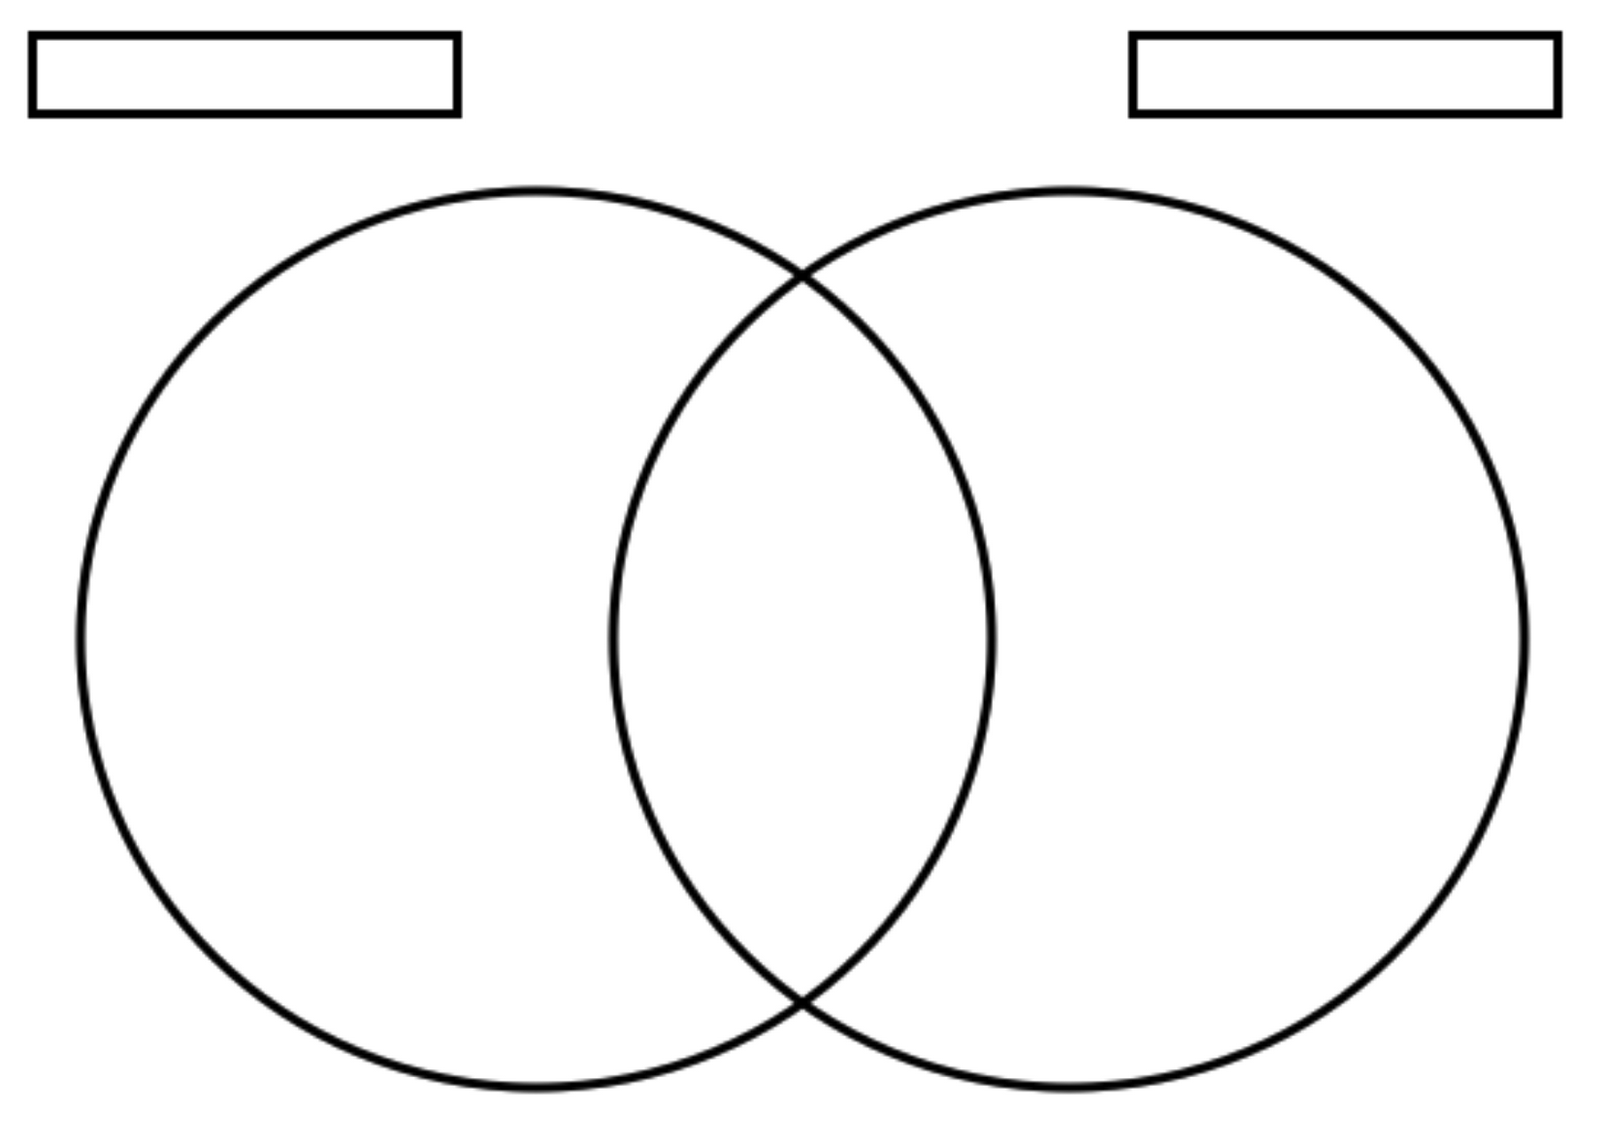 For lesson plan venn diagram for castle residential electrical micro teaching direct lesson plan comparing governments part i a rh casinerina blogspot com story venn diagram for kindergarten venn diagram examples for ccuart Image collections